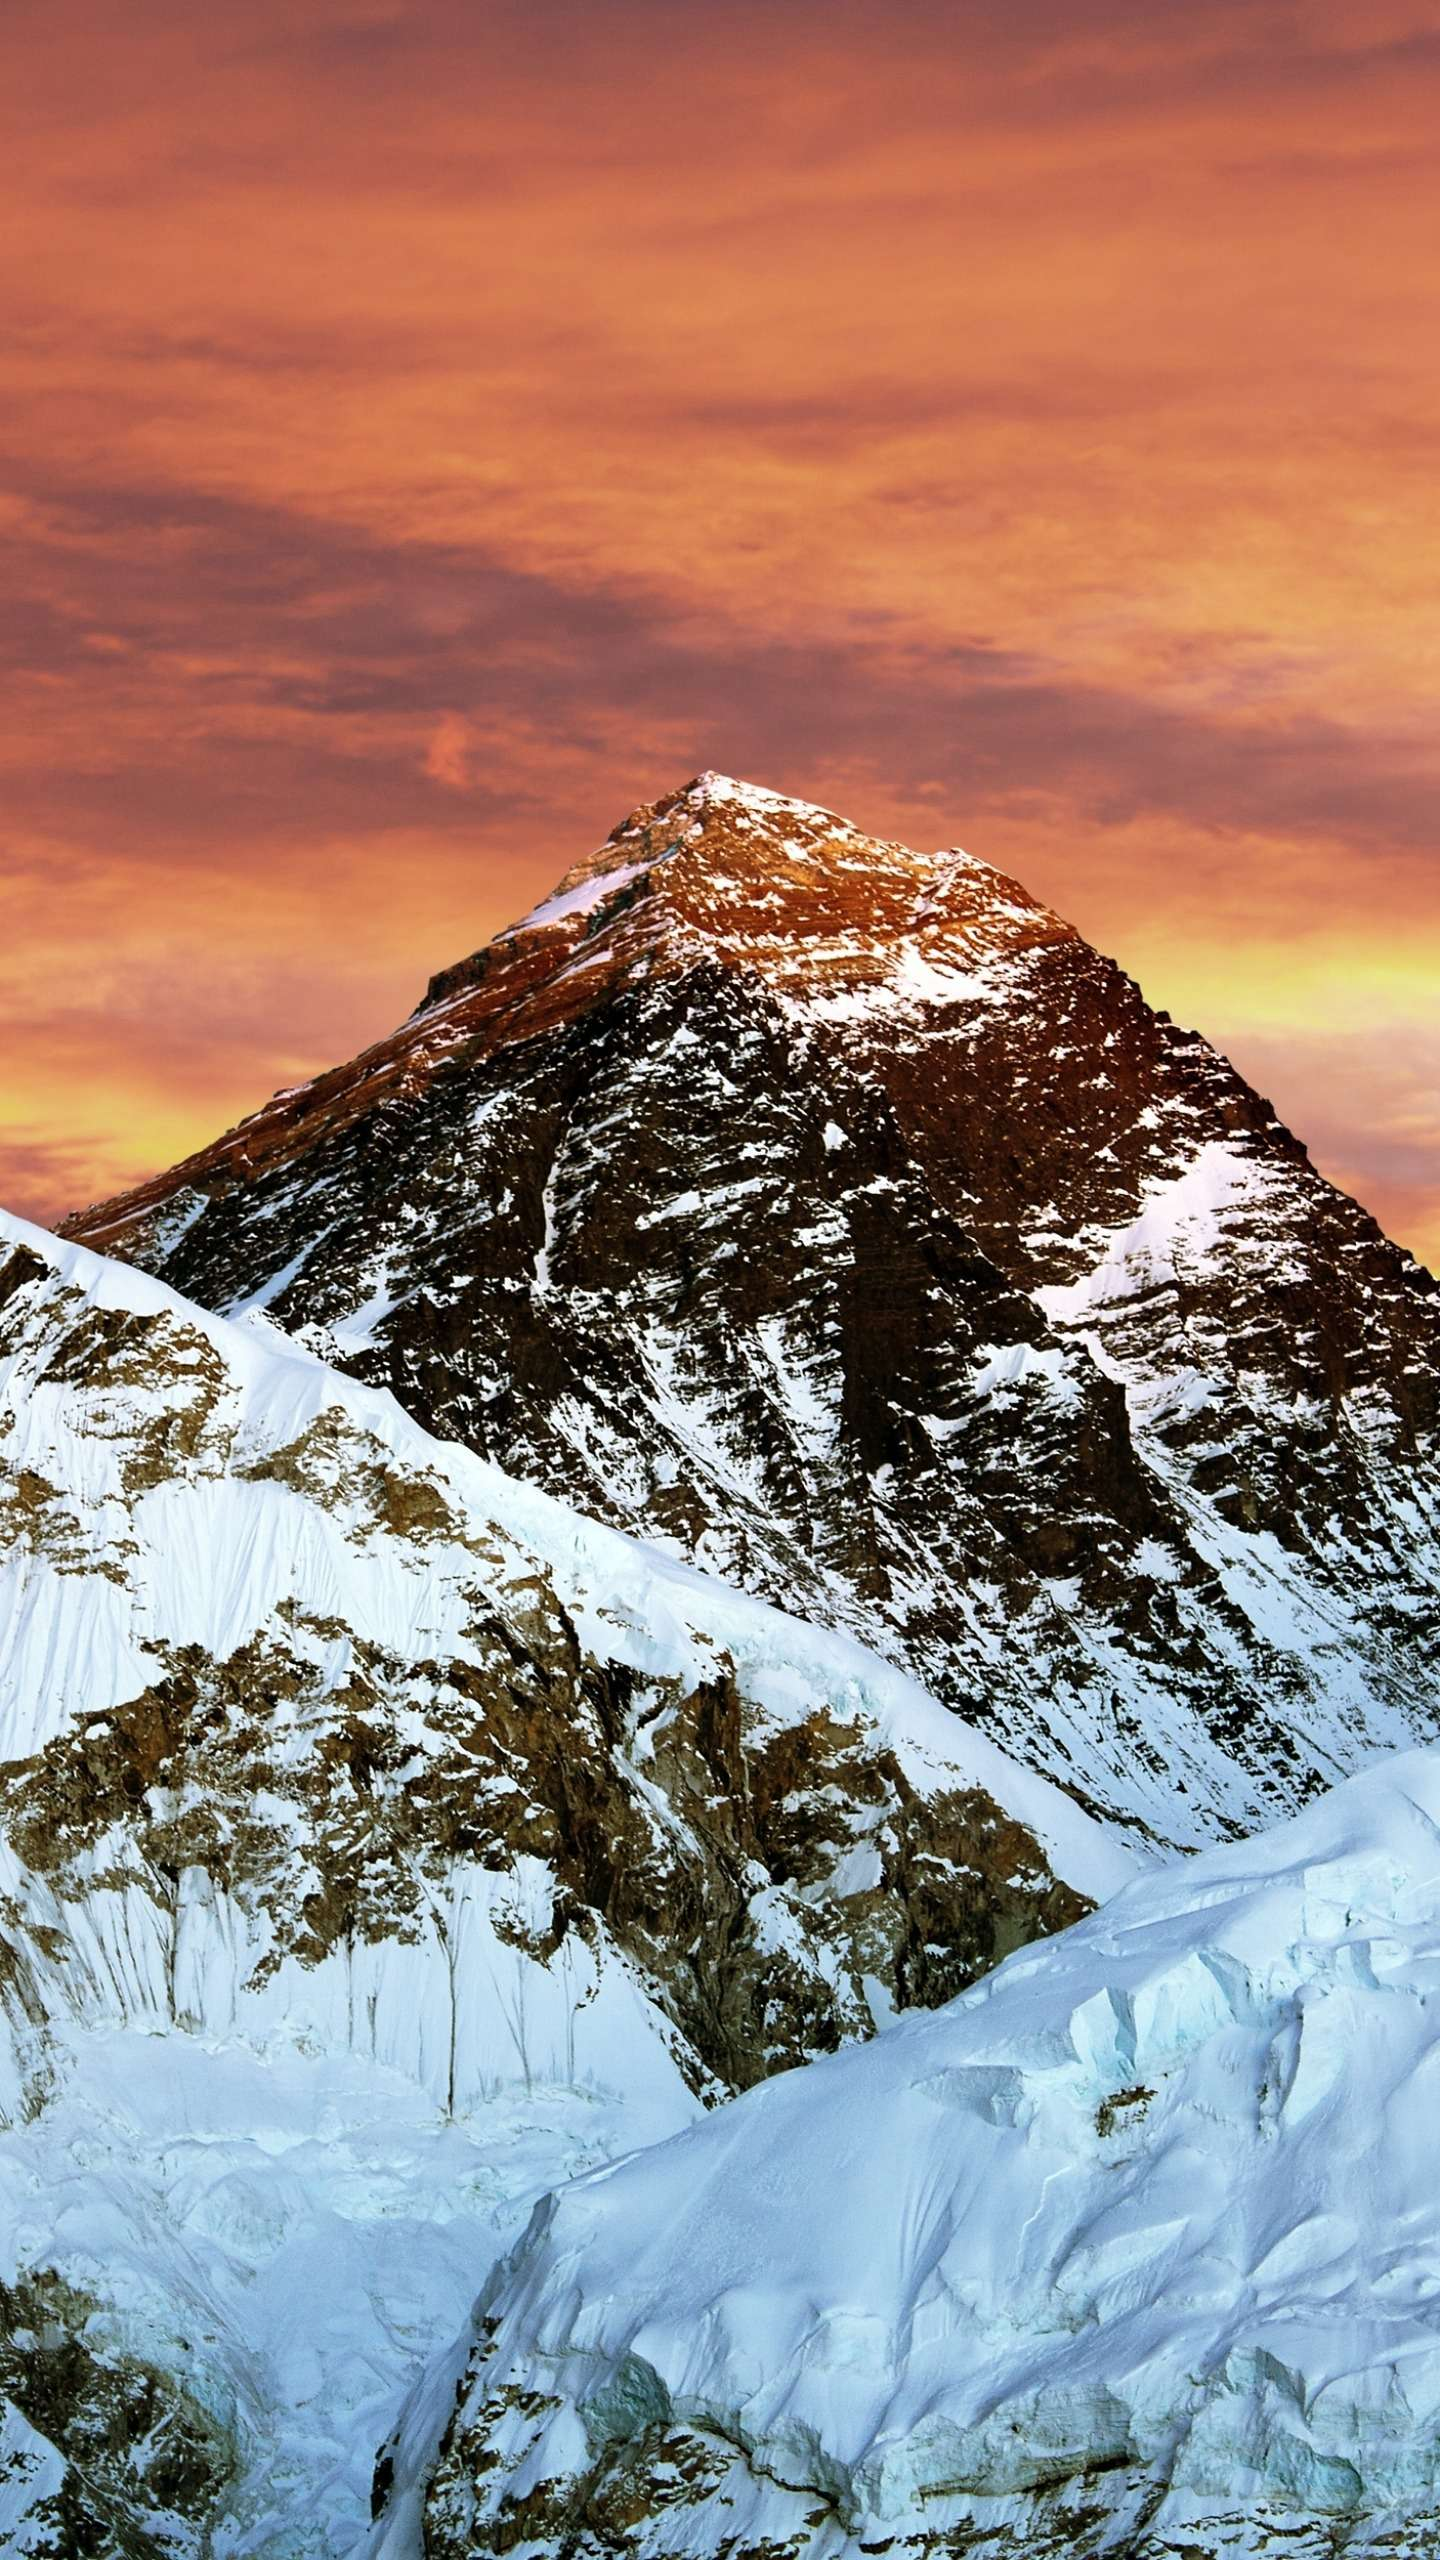 Mount Everest. Mount Everest is still one of the wildest dreams of mankind.